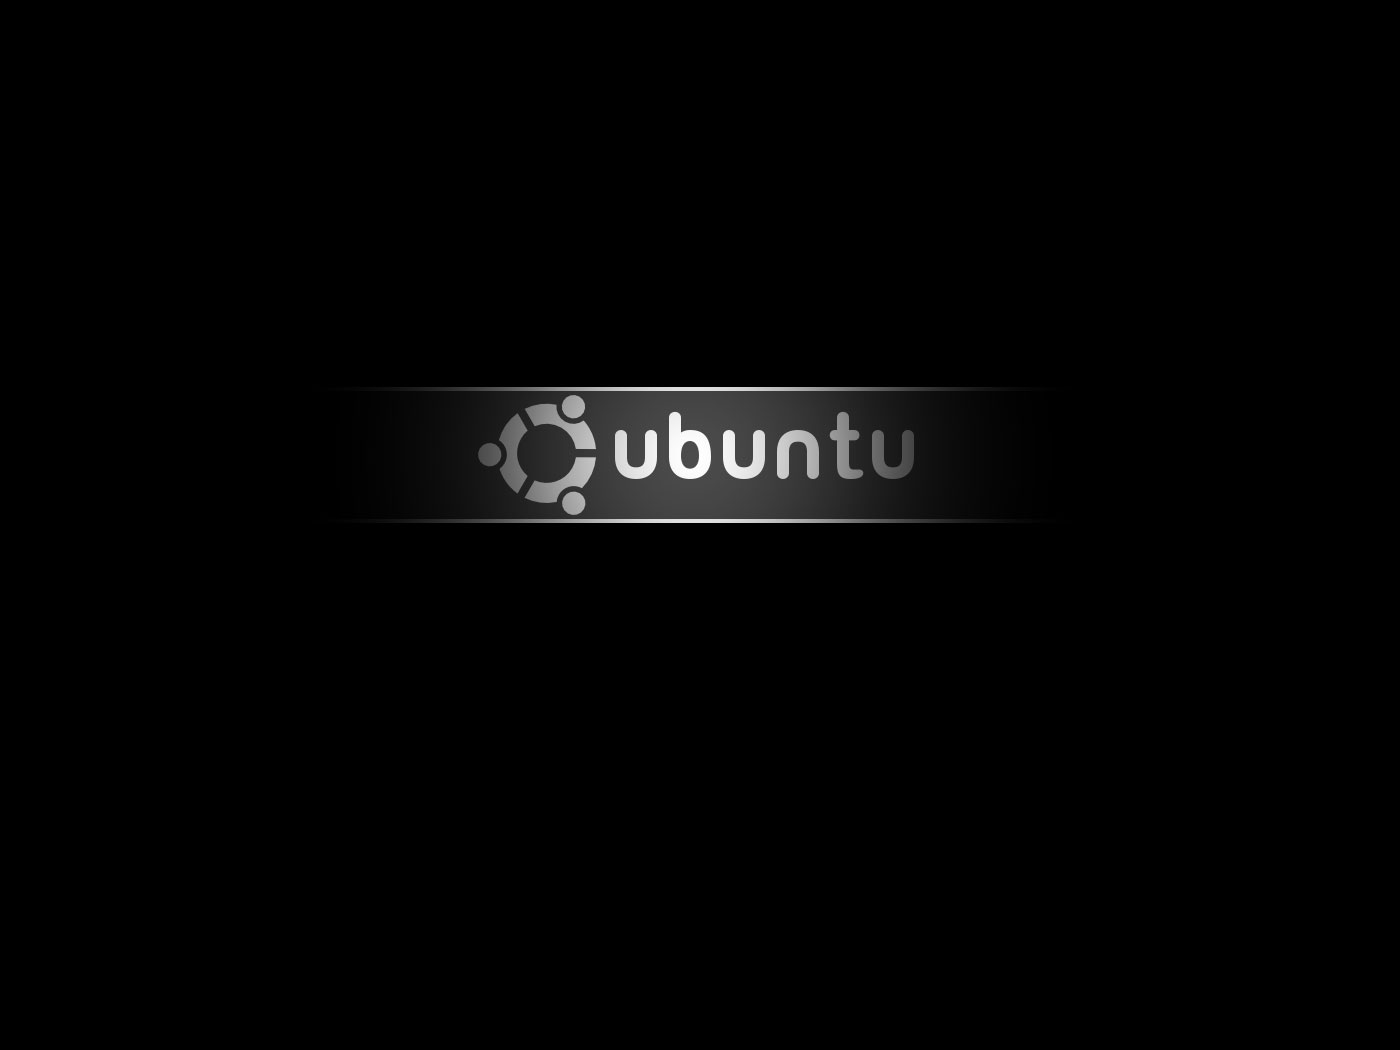 wallpaper you are viewing the linux wallpaper named black ubuntu it 1400x1050